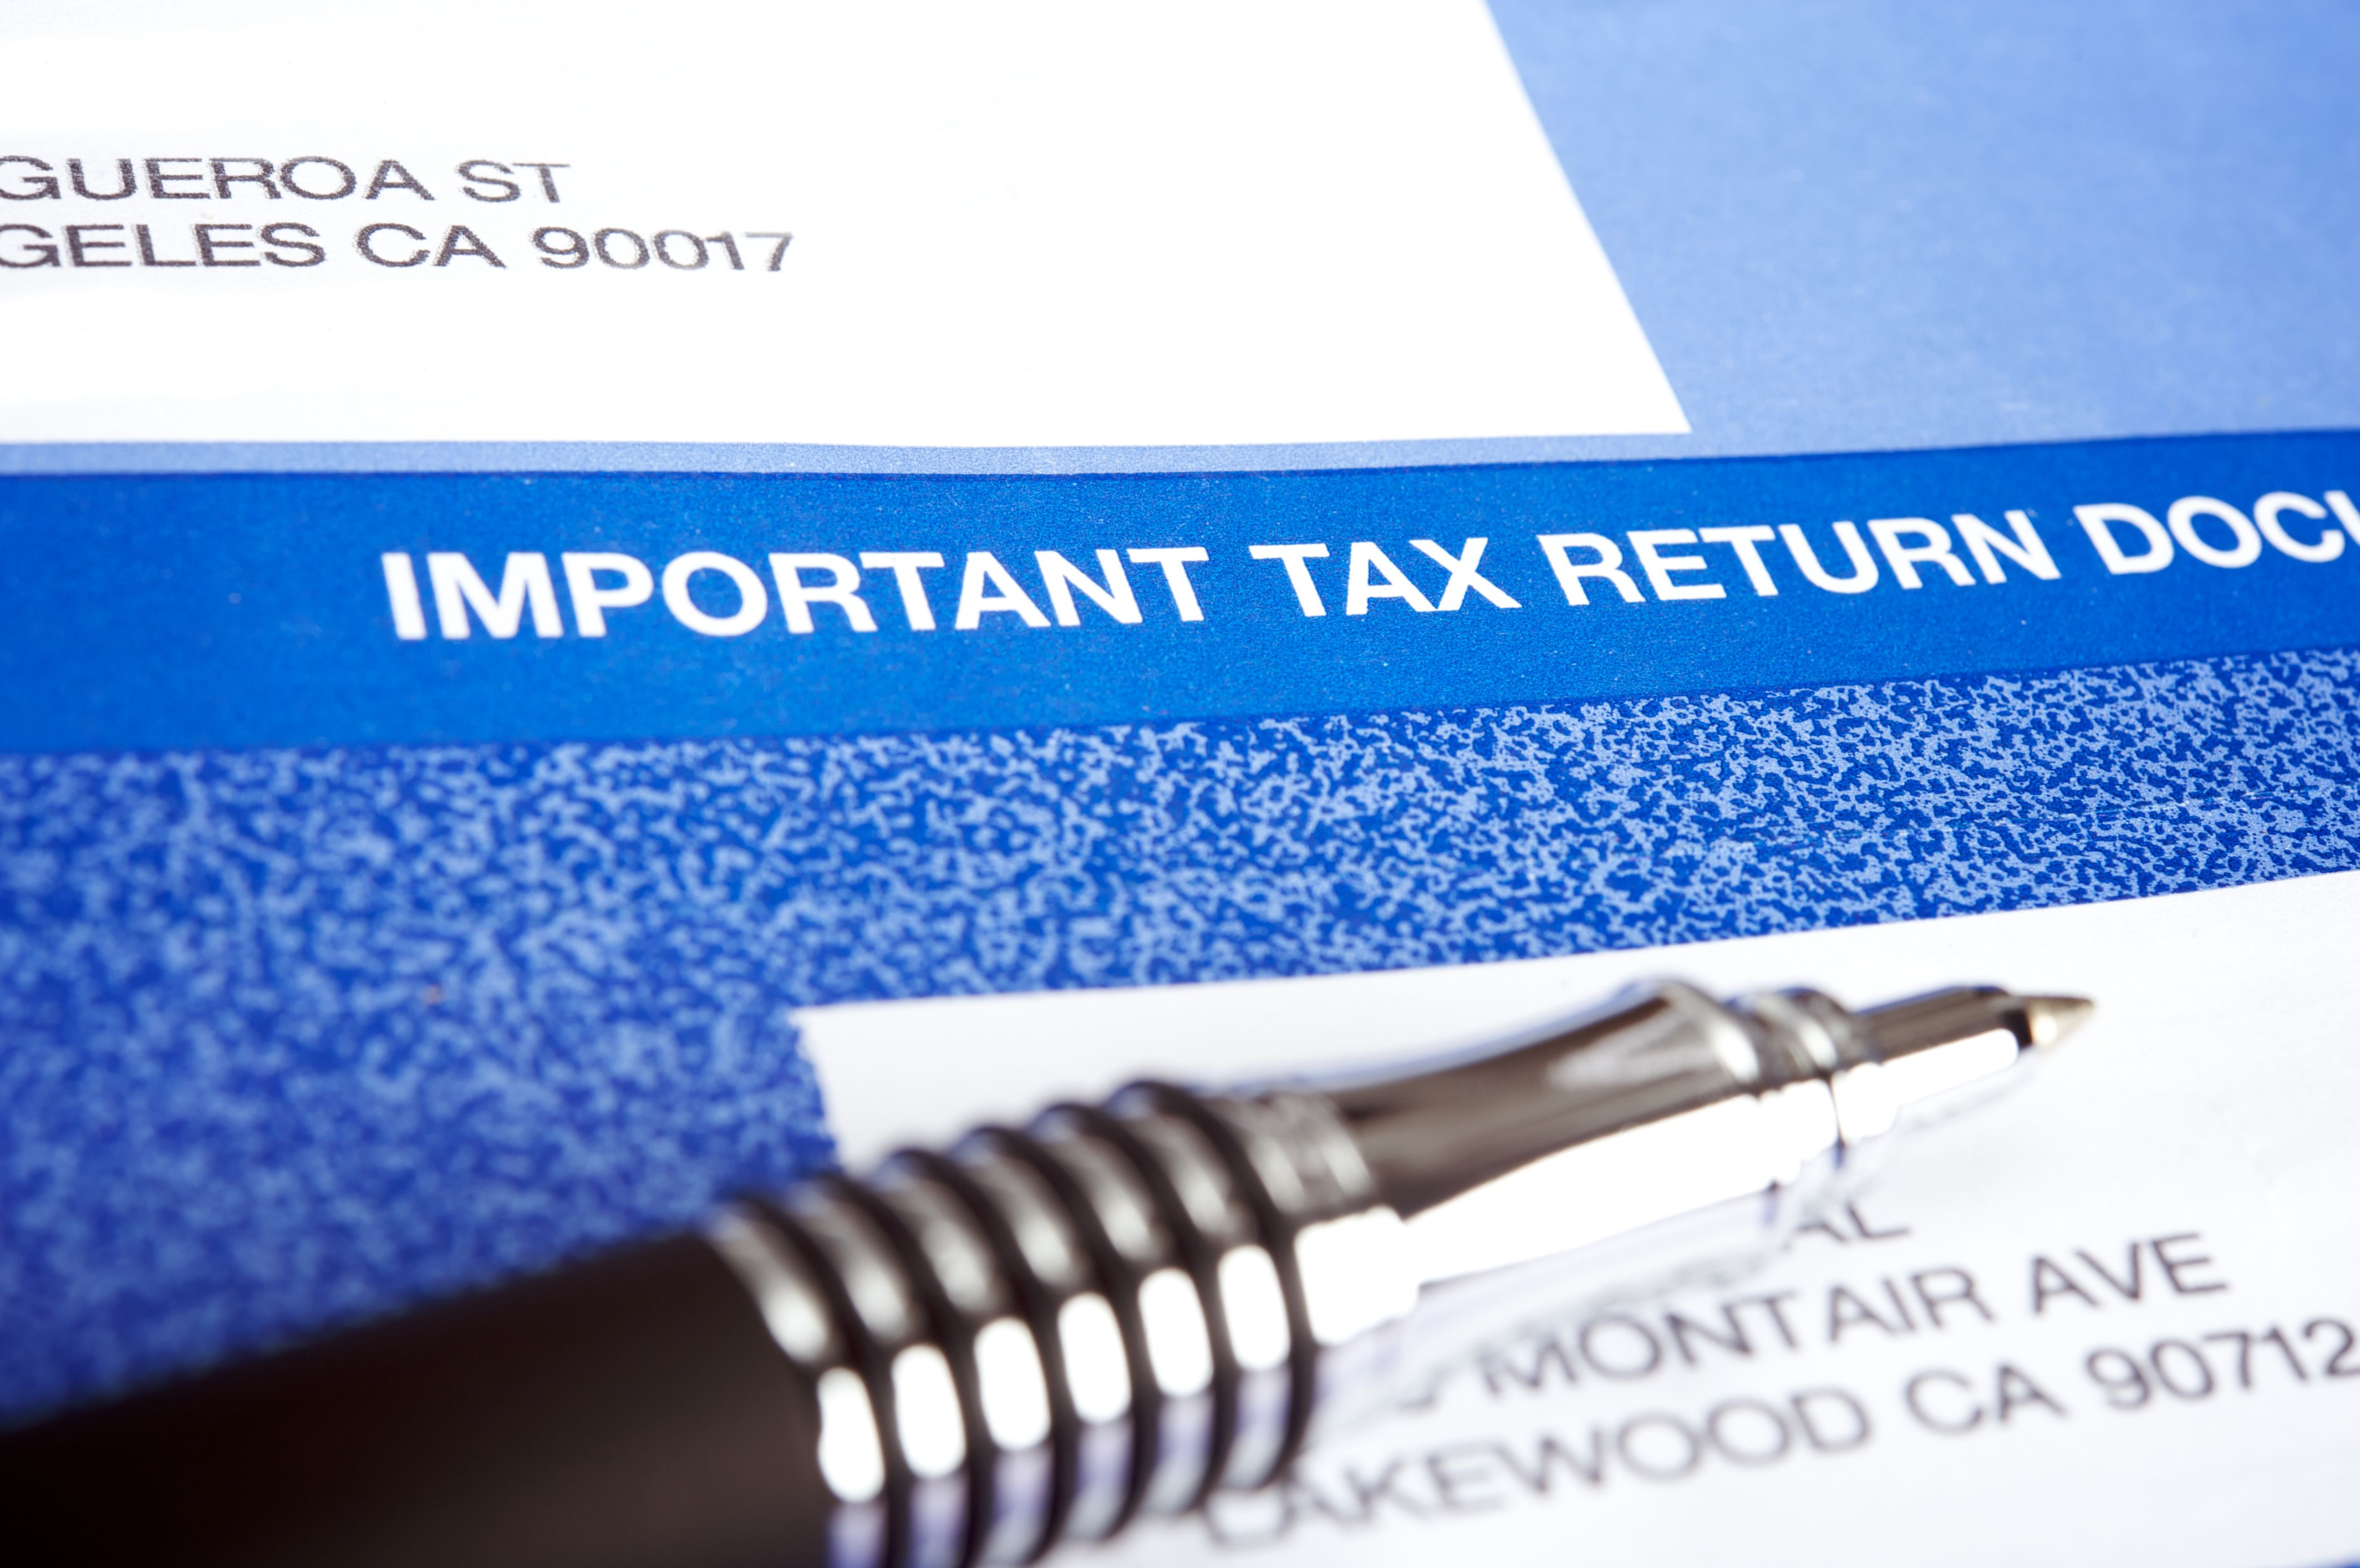 The Difference Between Form W-2 and Form 1099-MISC